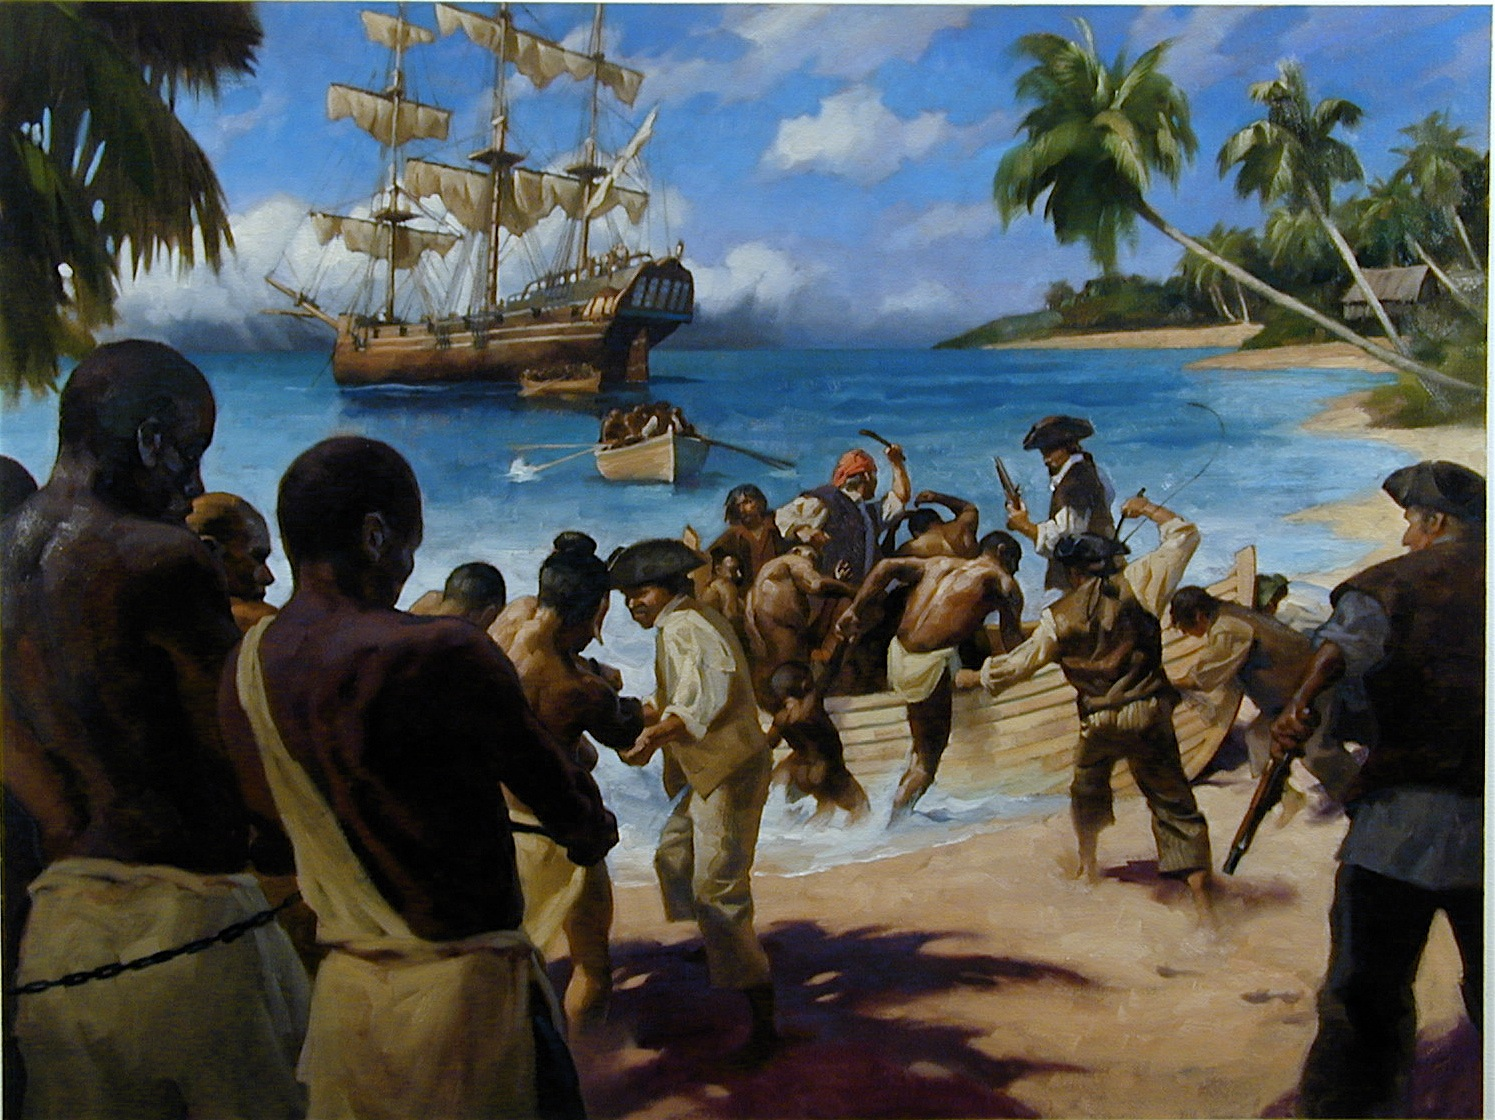 Pirate Paintings for National Geographic Pt.5